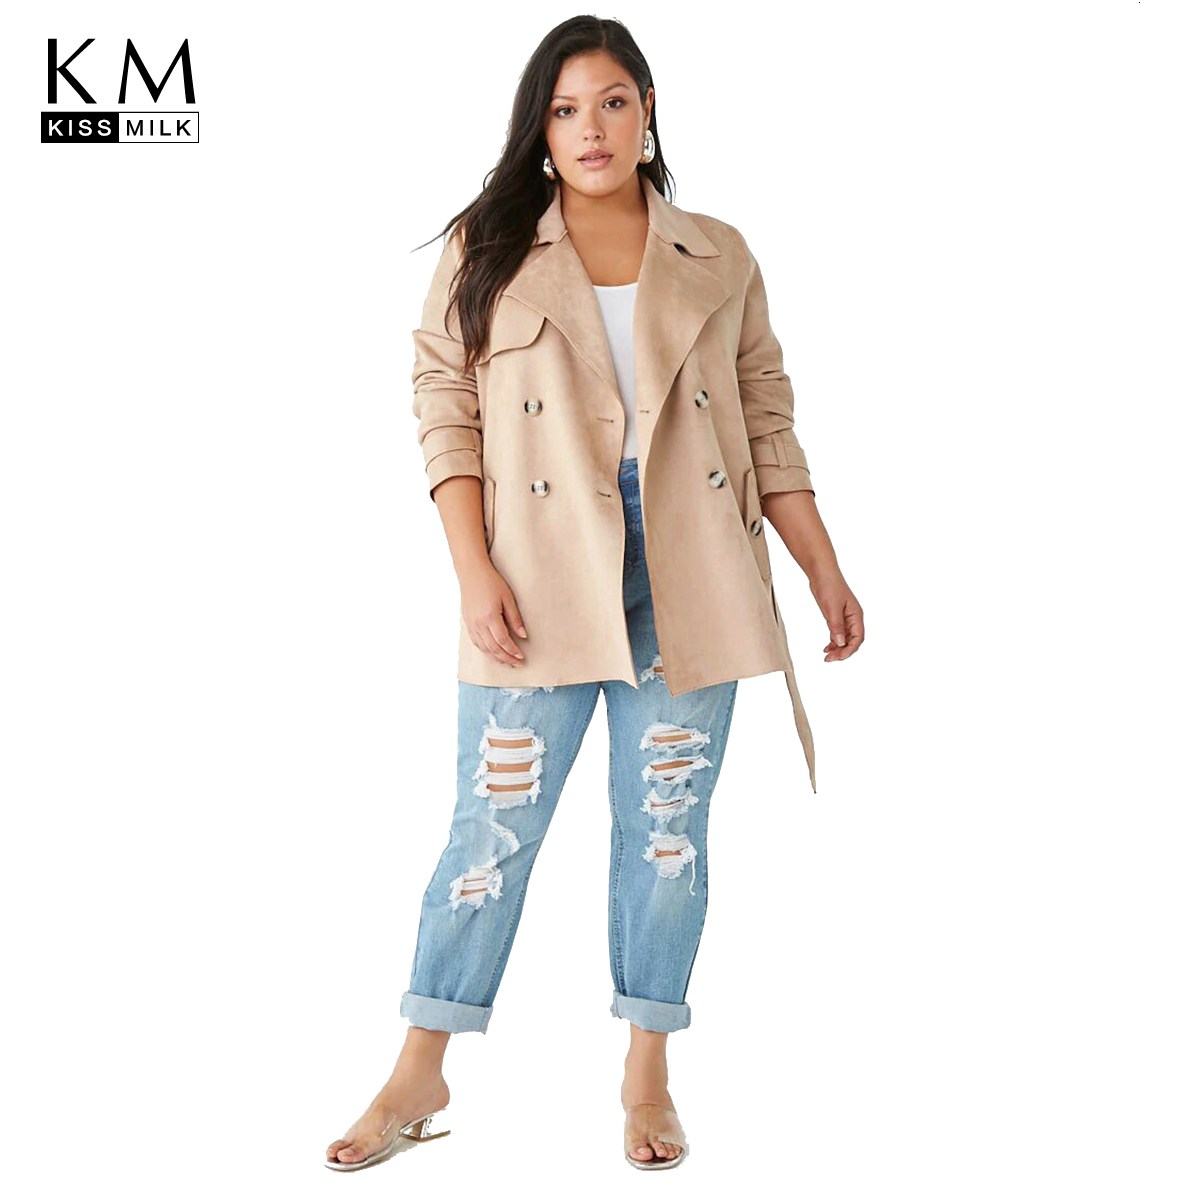 Kissmilk Plus Size Woman Clothes Casual Solid Color Suede Double-breasted Tiebreaker